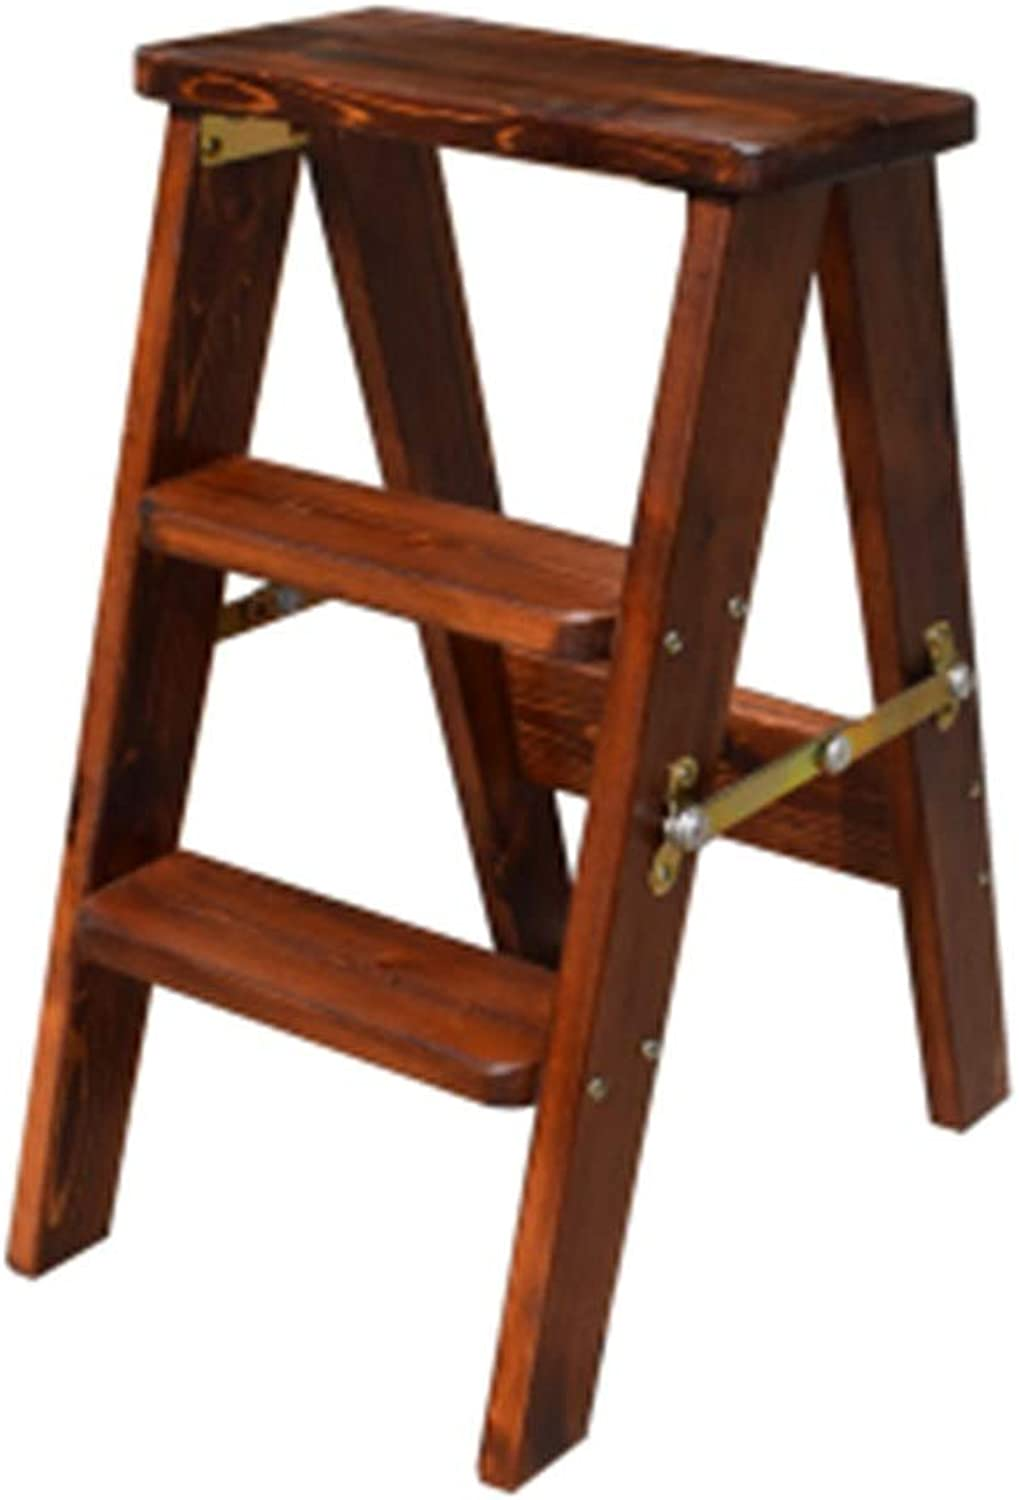 Stools Ladder Stool Home Folding Three-Step Ladder Climbing Stool Ladder Stool Dual-use Folding Chair Solid Wood (color   Brown, Size   33  47  60cm)